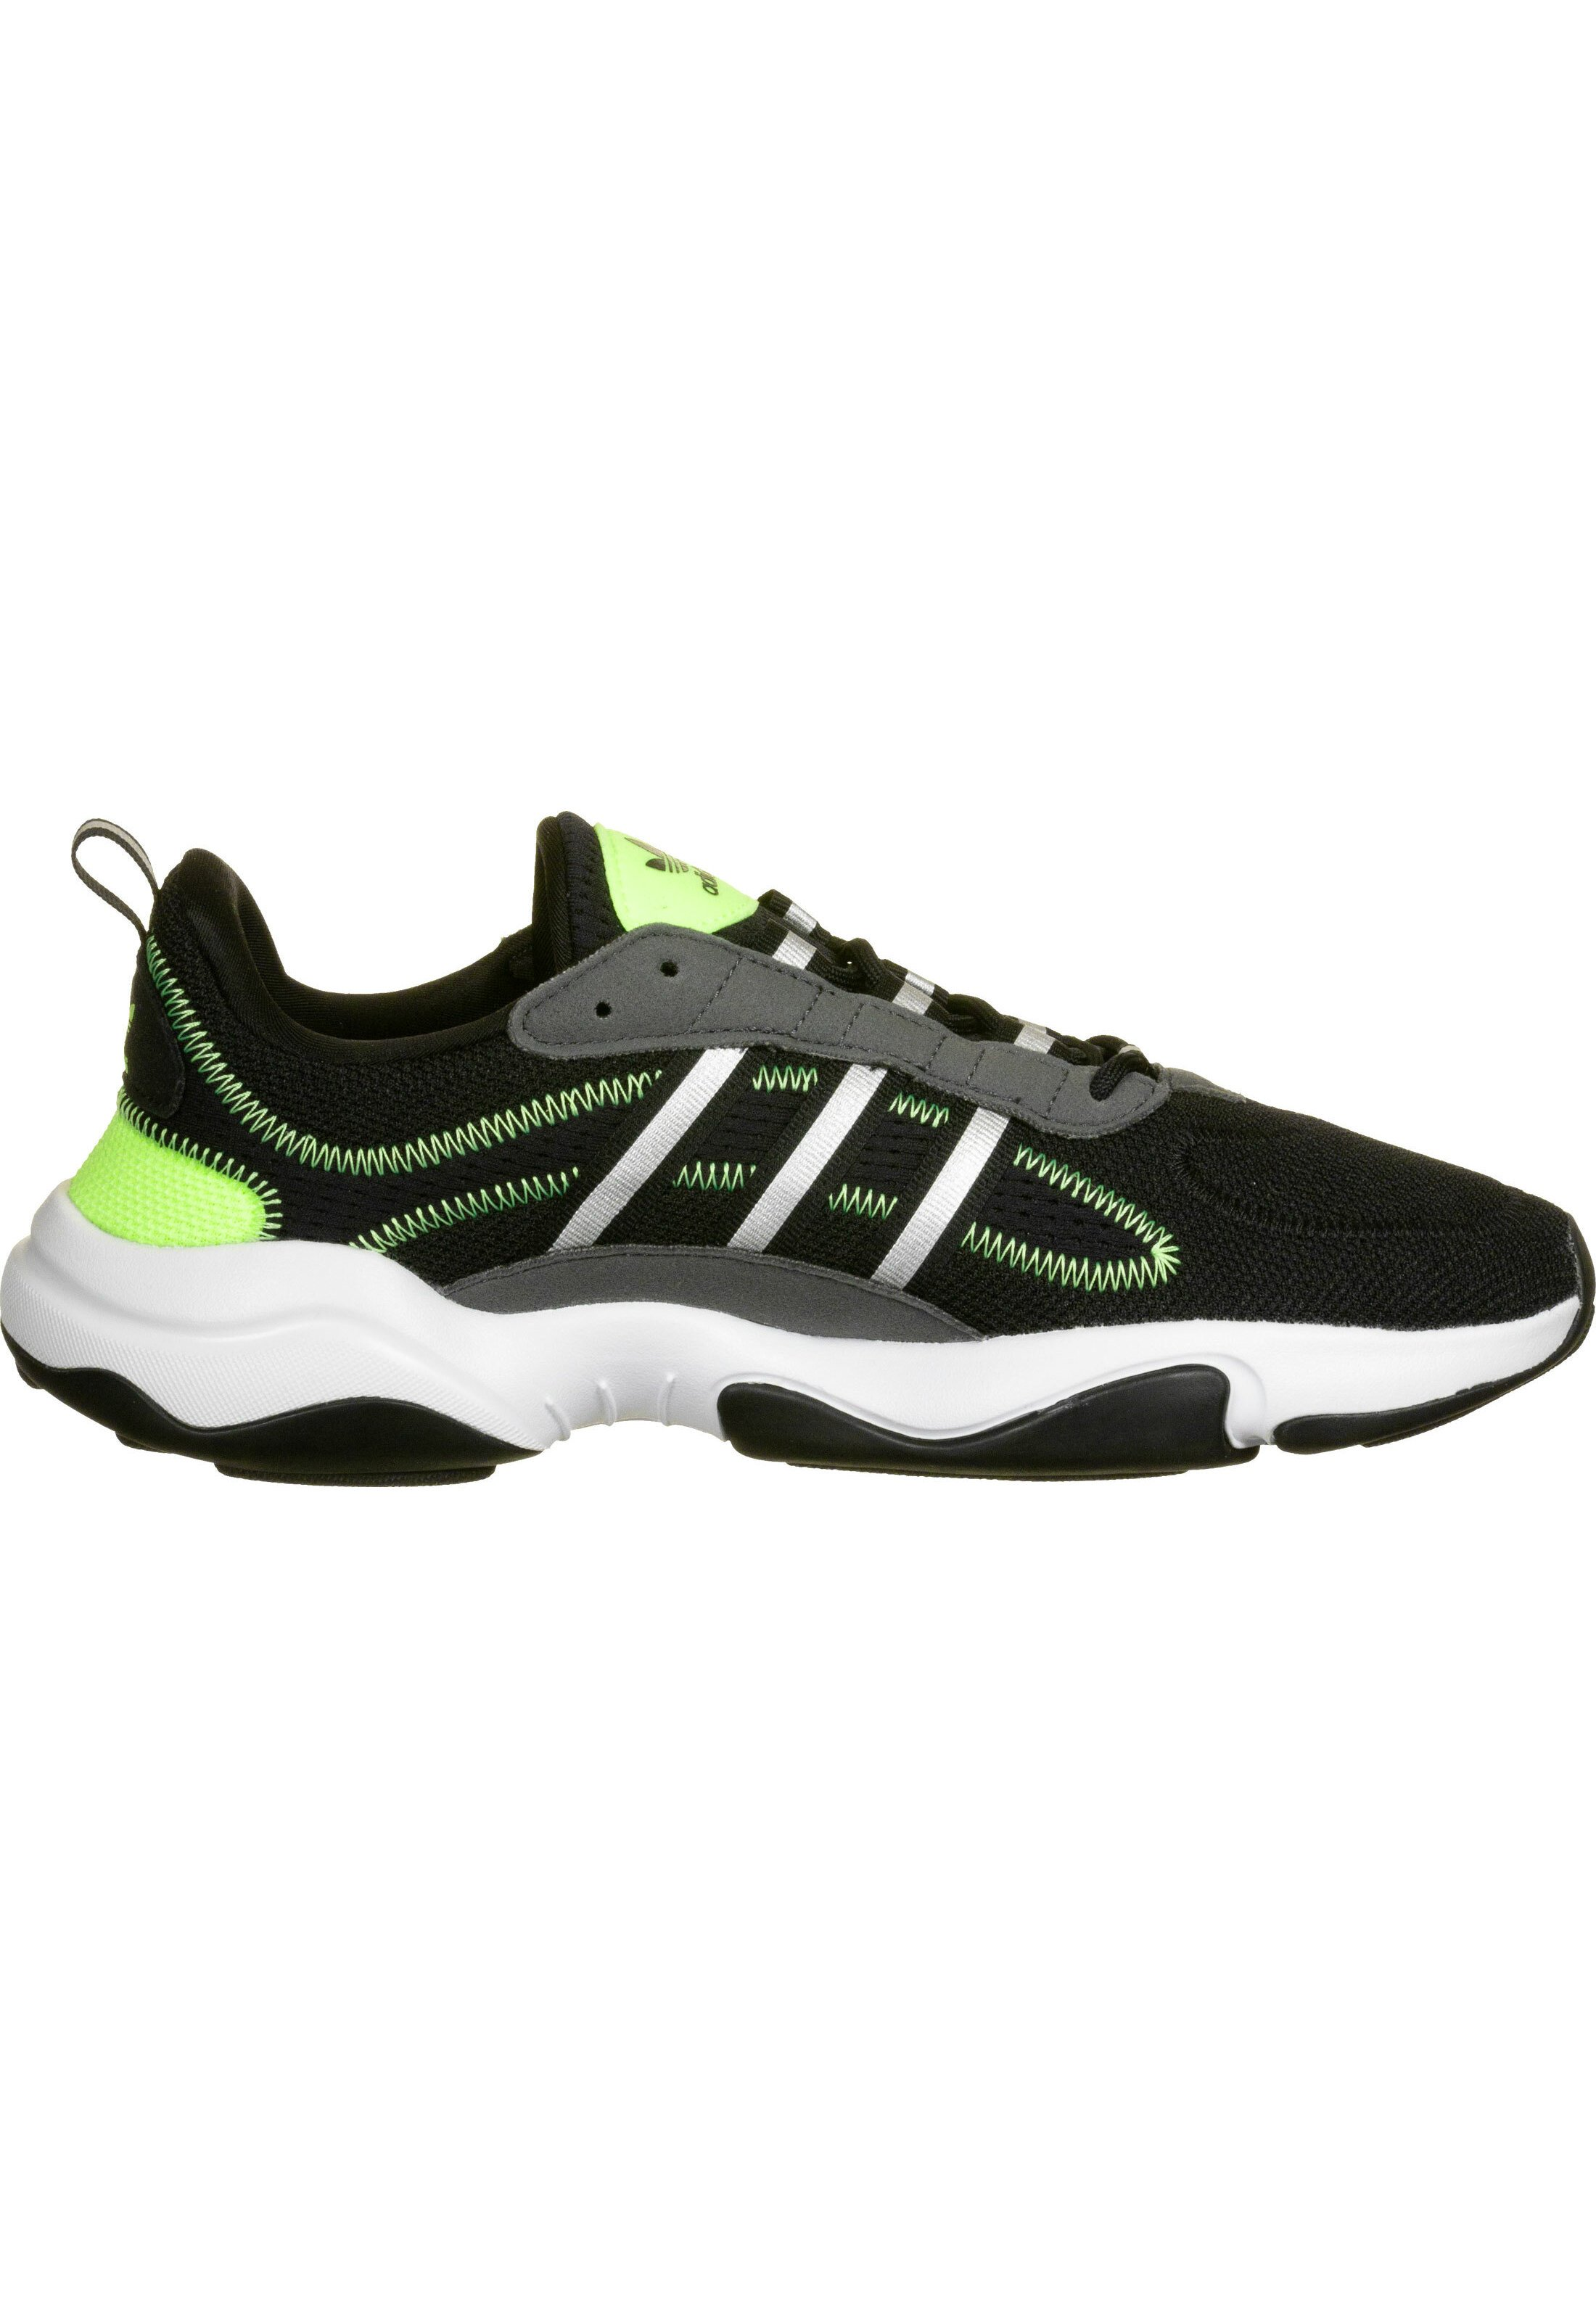 adidas orion 2 in black & lime | Sneaker stiefel, Männer